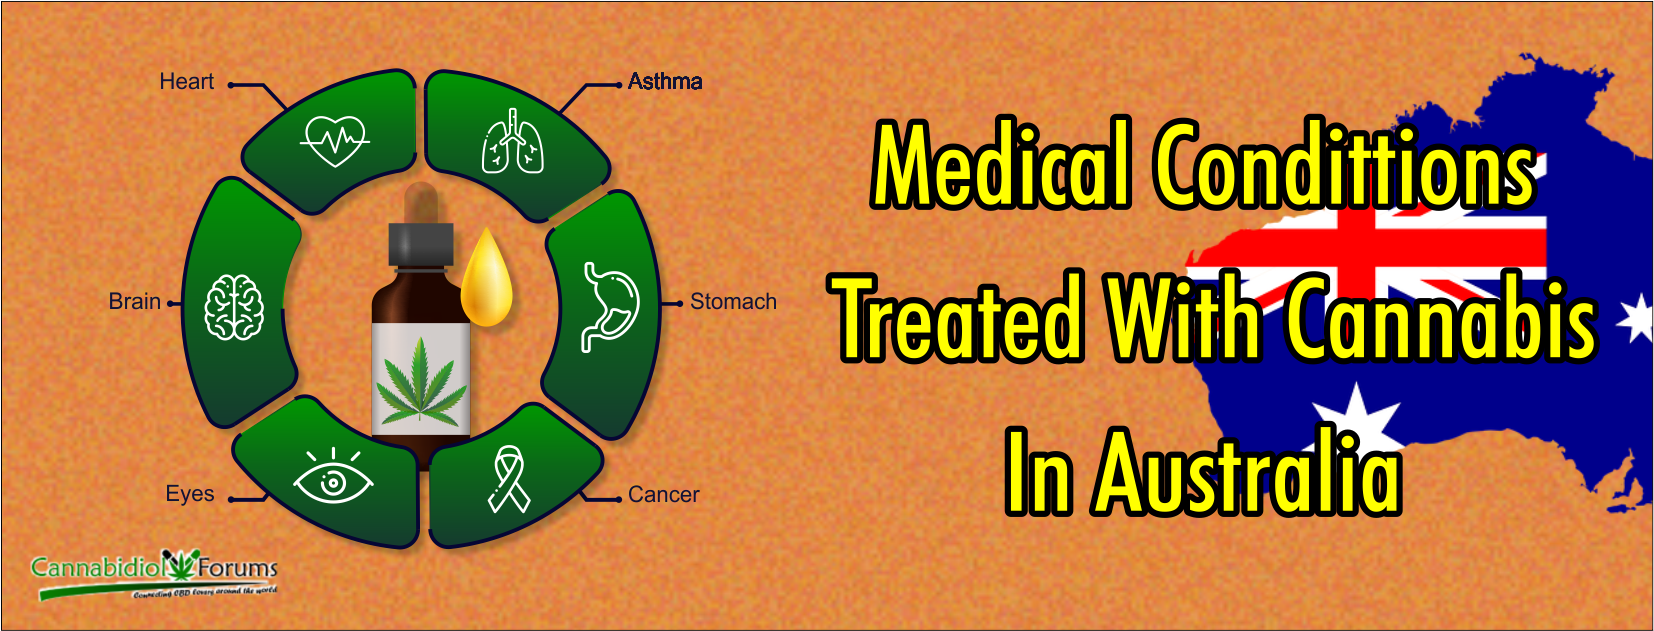 [Image: medical-condittions-treated-with-cannabi...tralia.png]